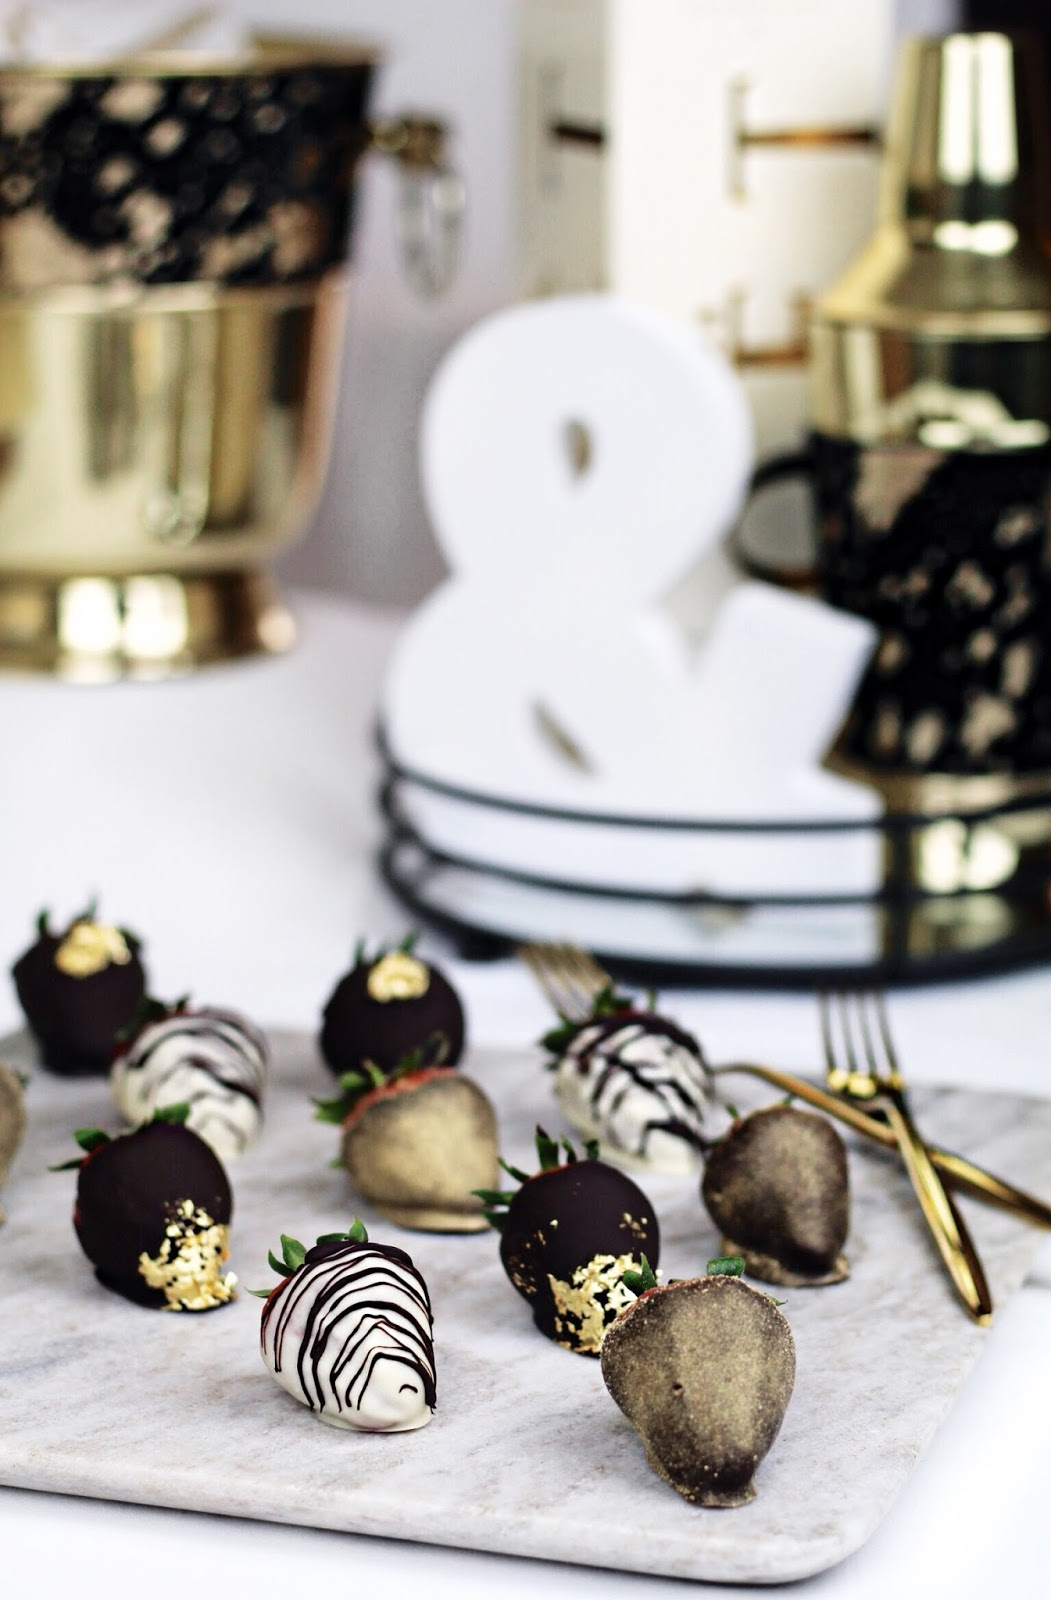 Luxurious Chocolate Strawberries in Gold Leaf